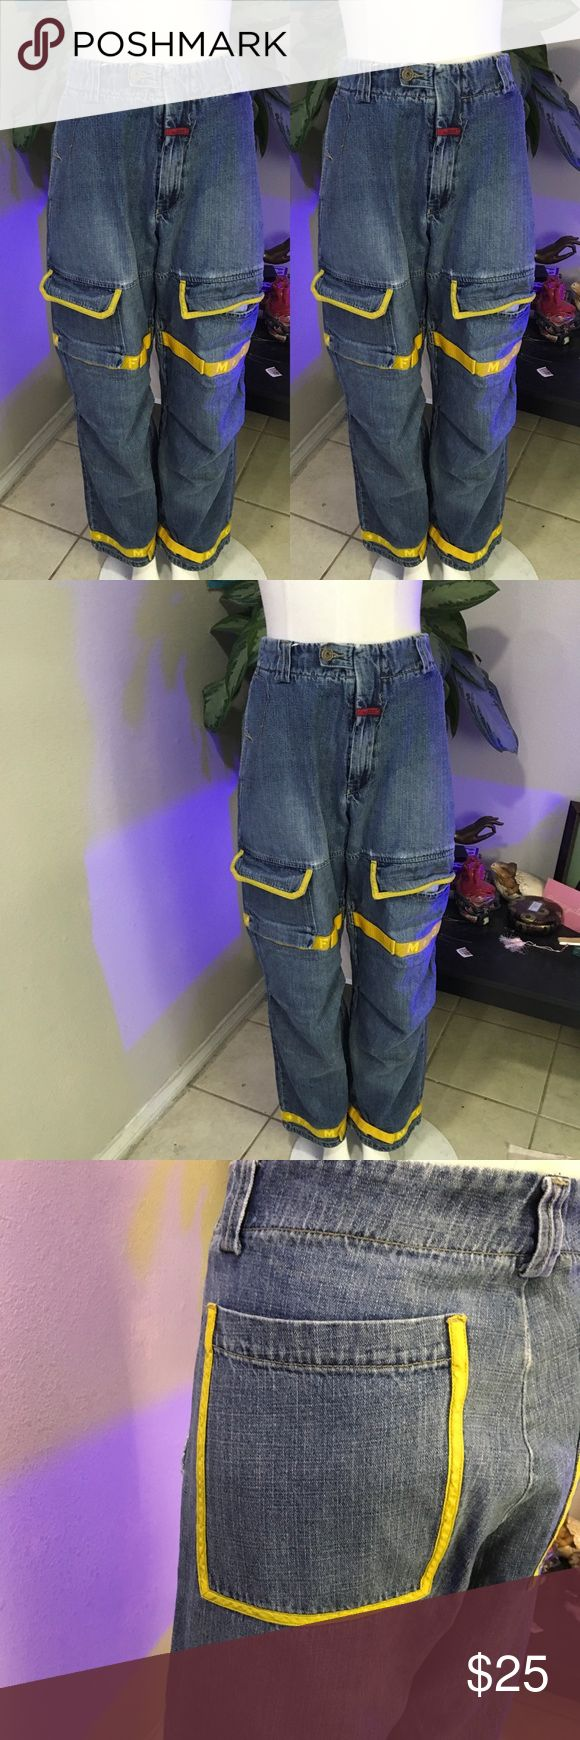 MARITHE FRANCOIS GIRBAUD 36 YELLOW PANTS JEANS Cute jeans by MARITHE Francois GIRBAUD Marithe Francois Girbaud Jeans